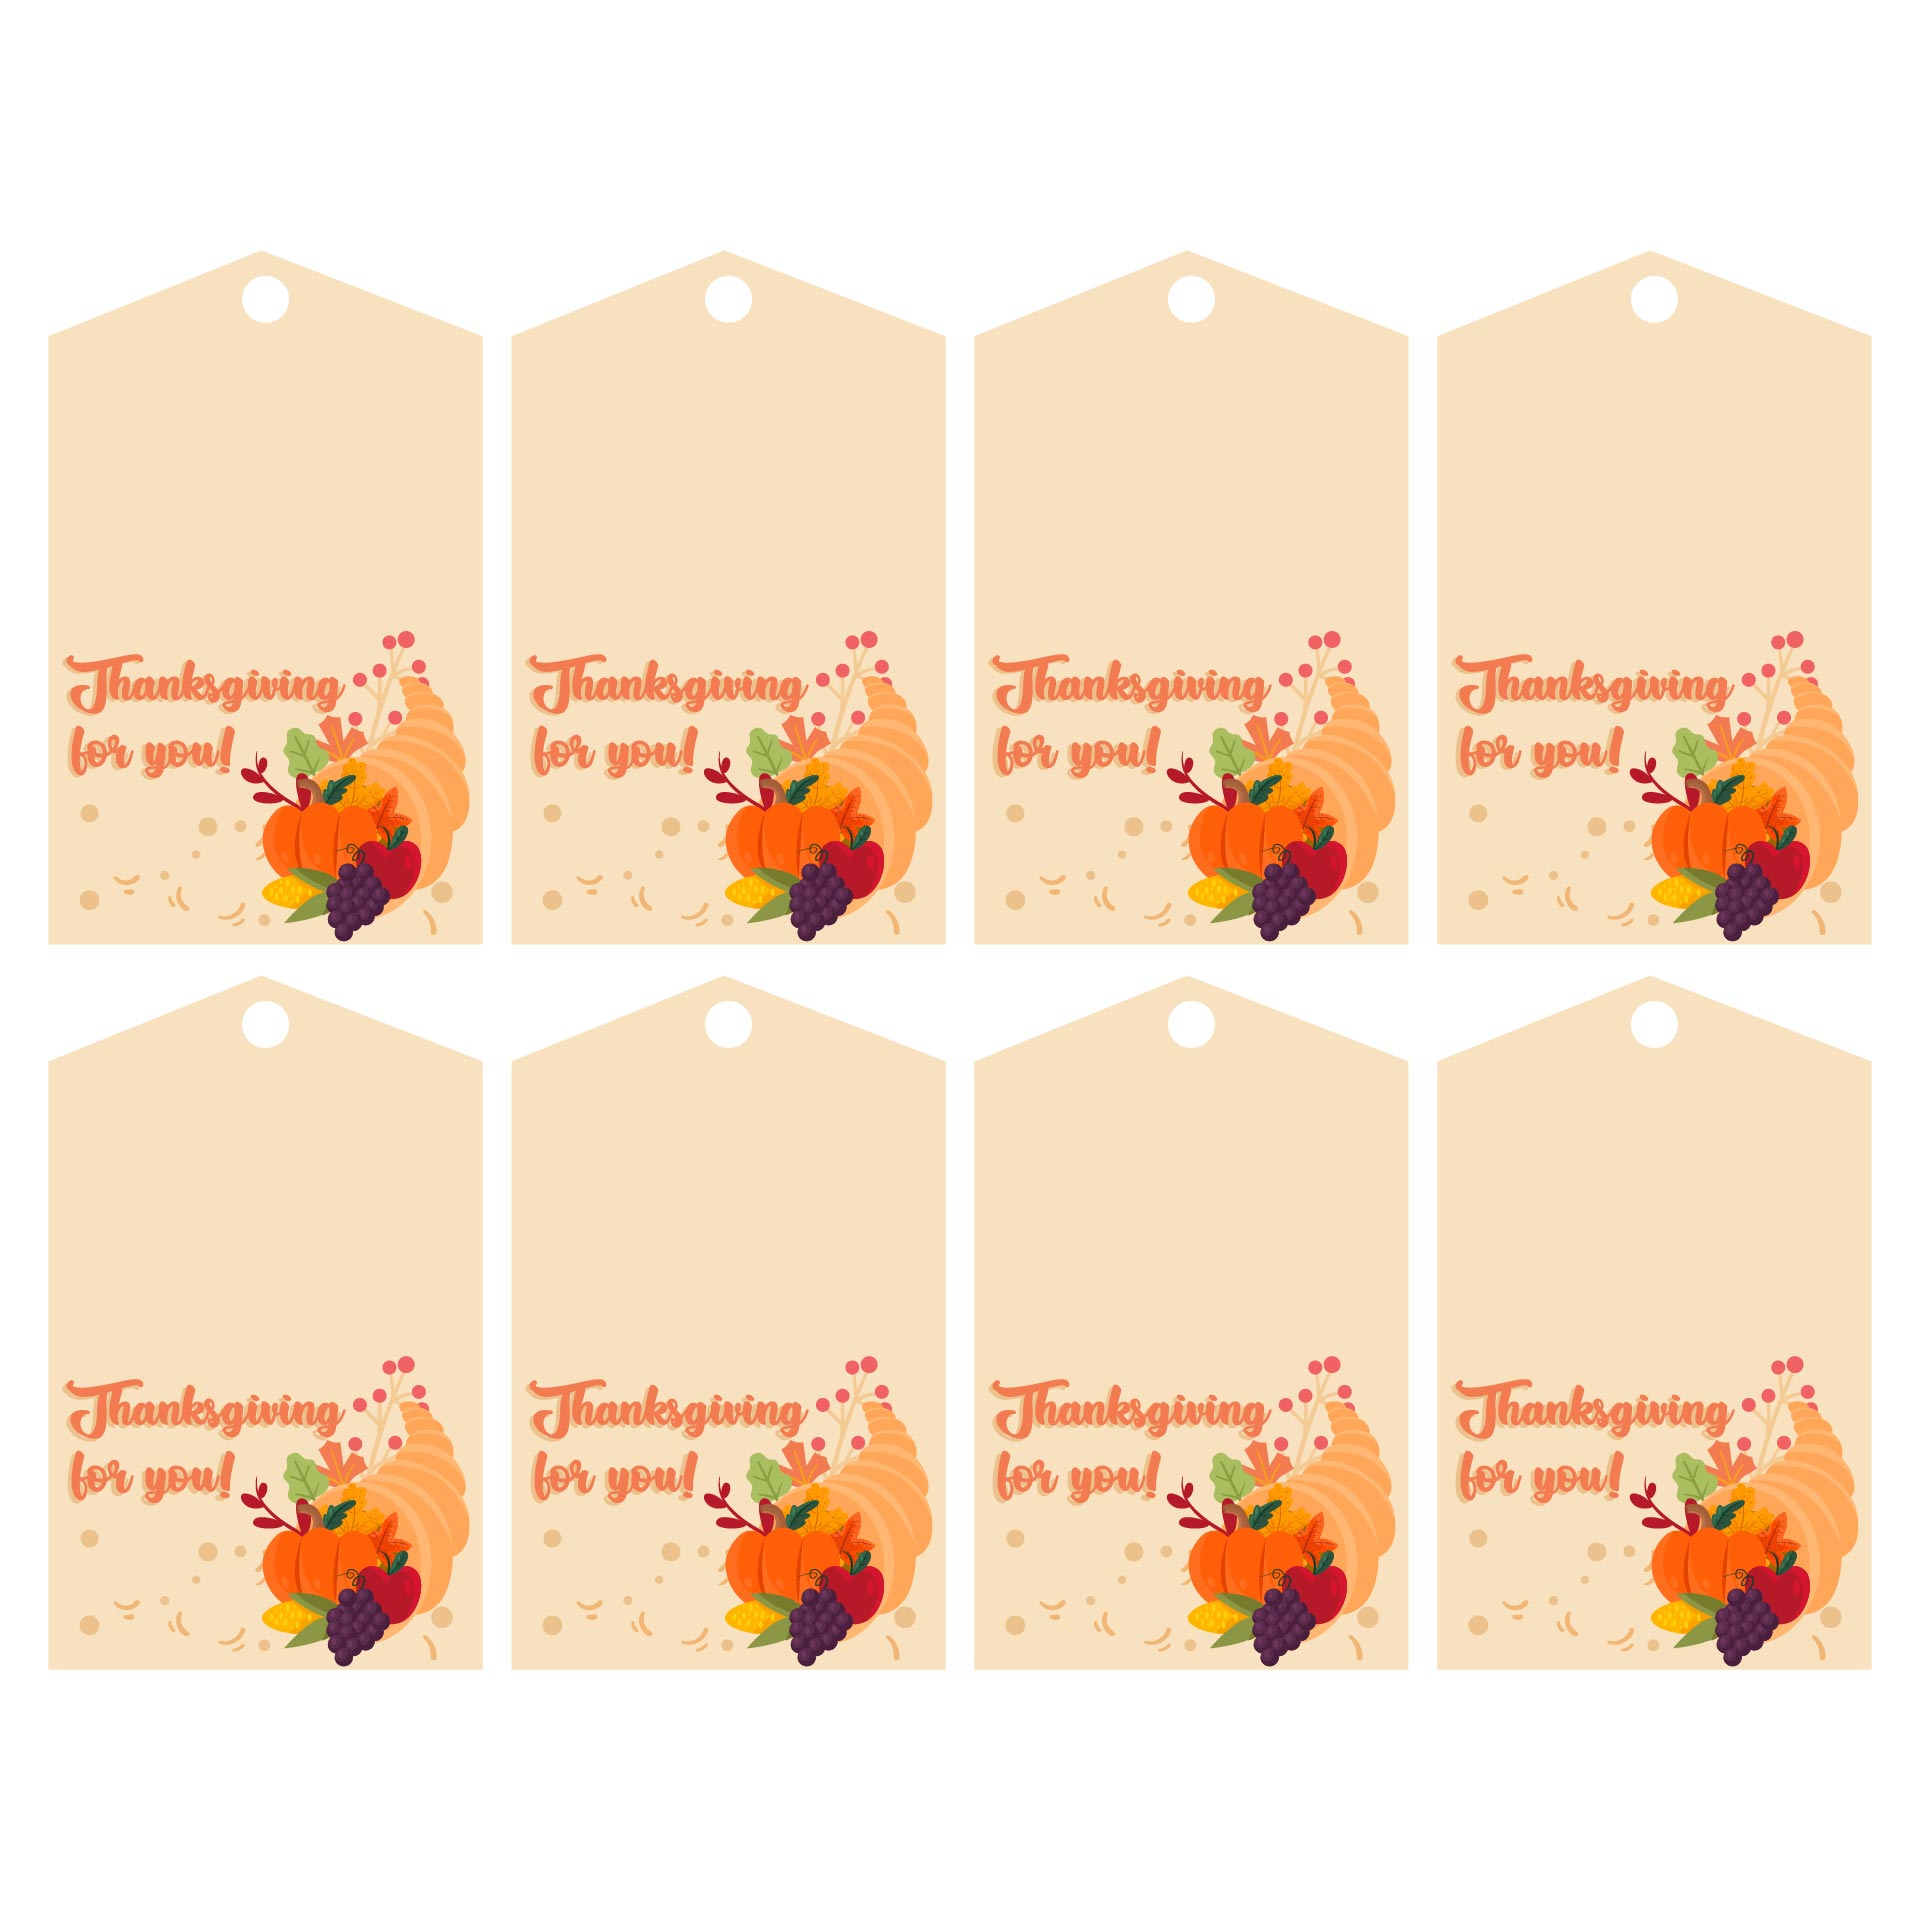 6 Images of Printable Thanksgiving Gift Tags